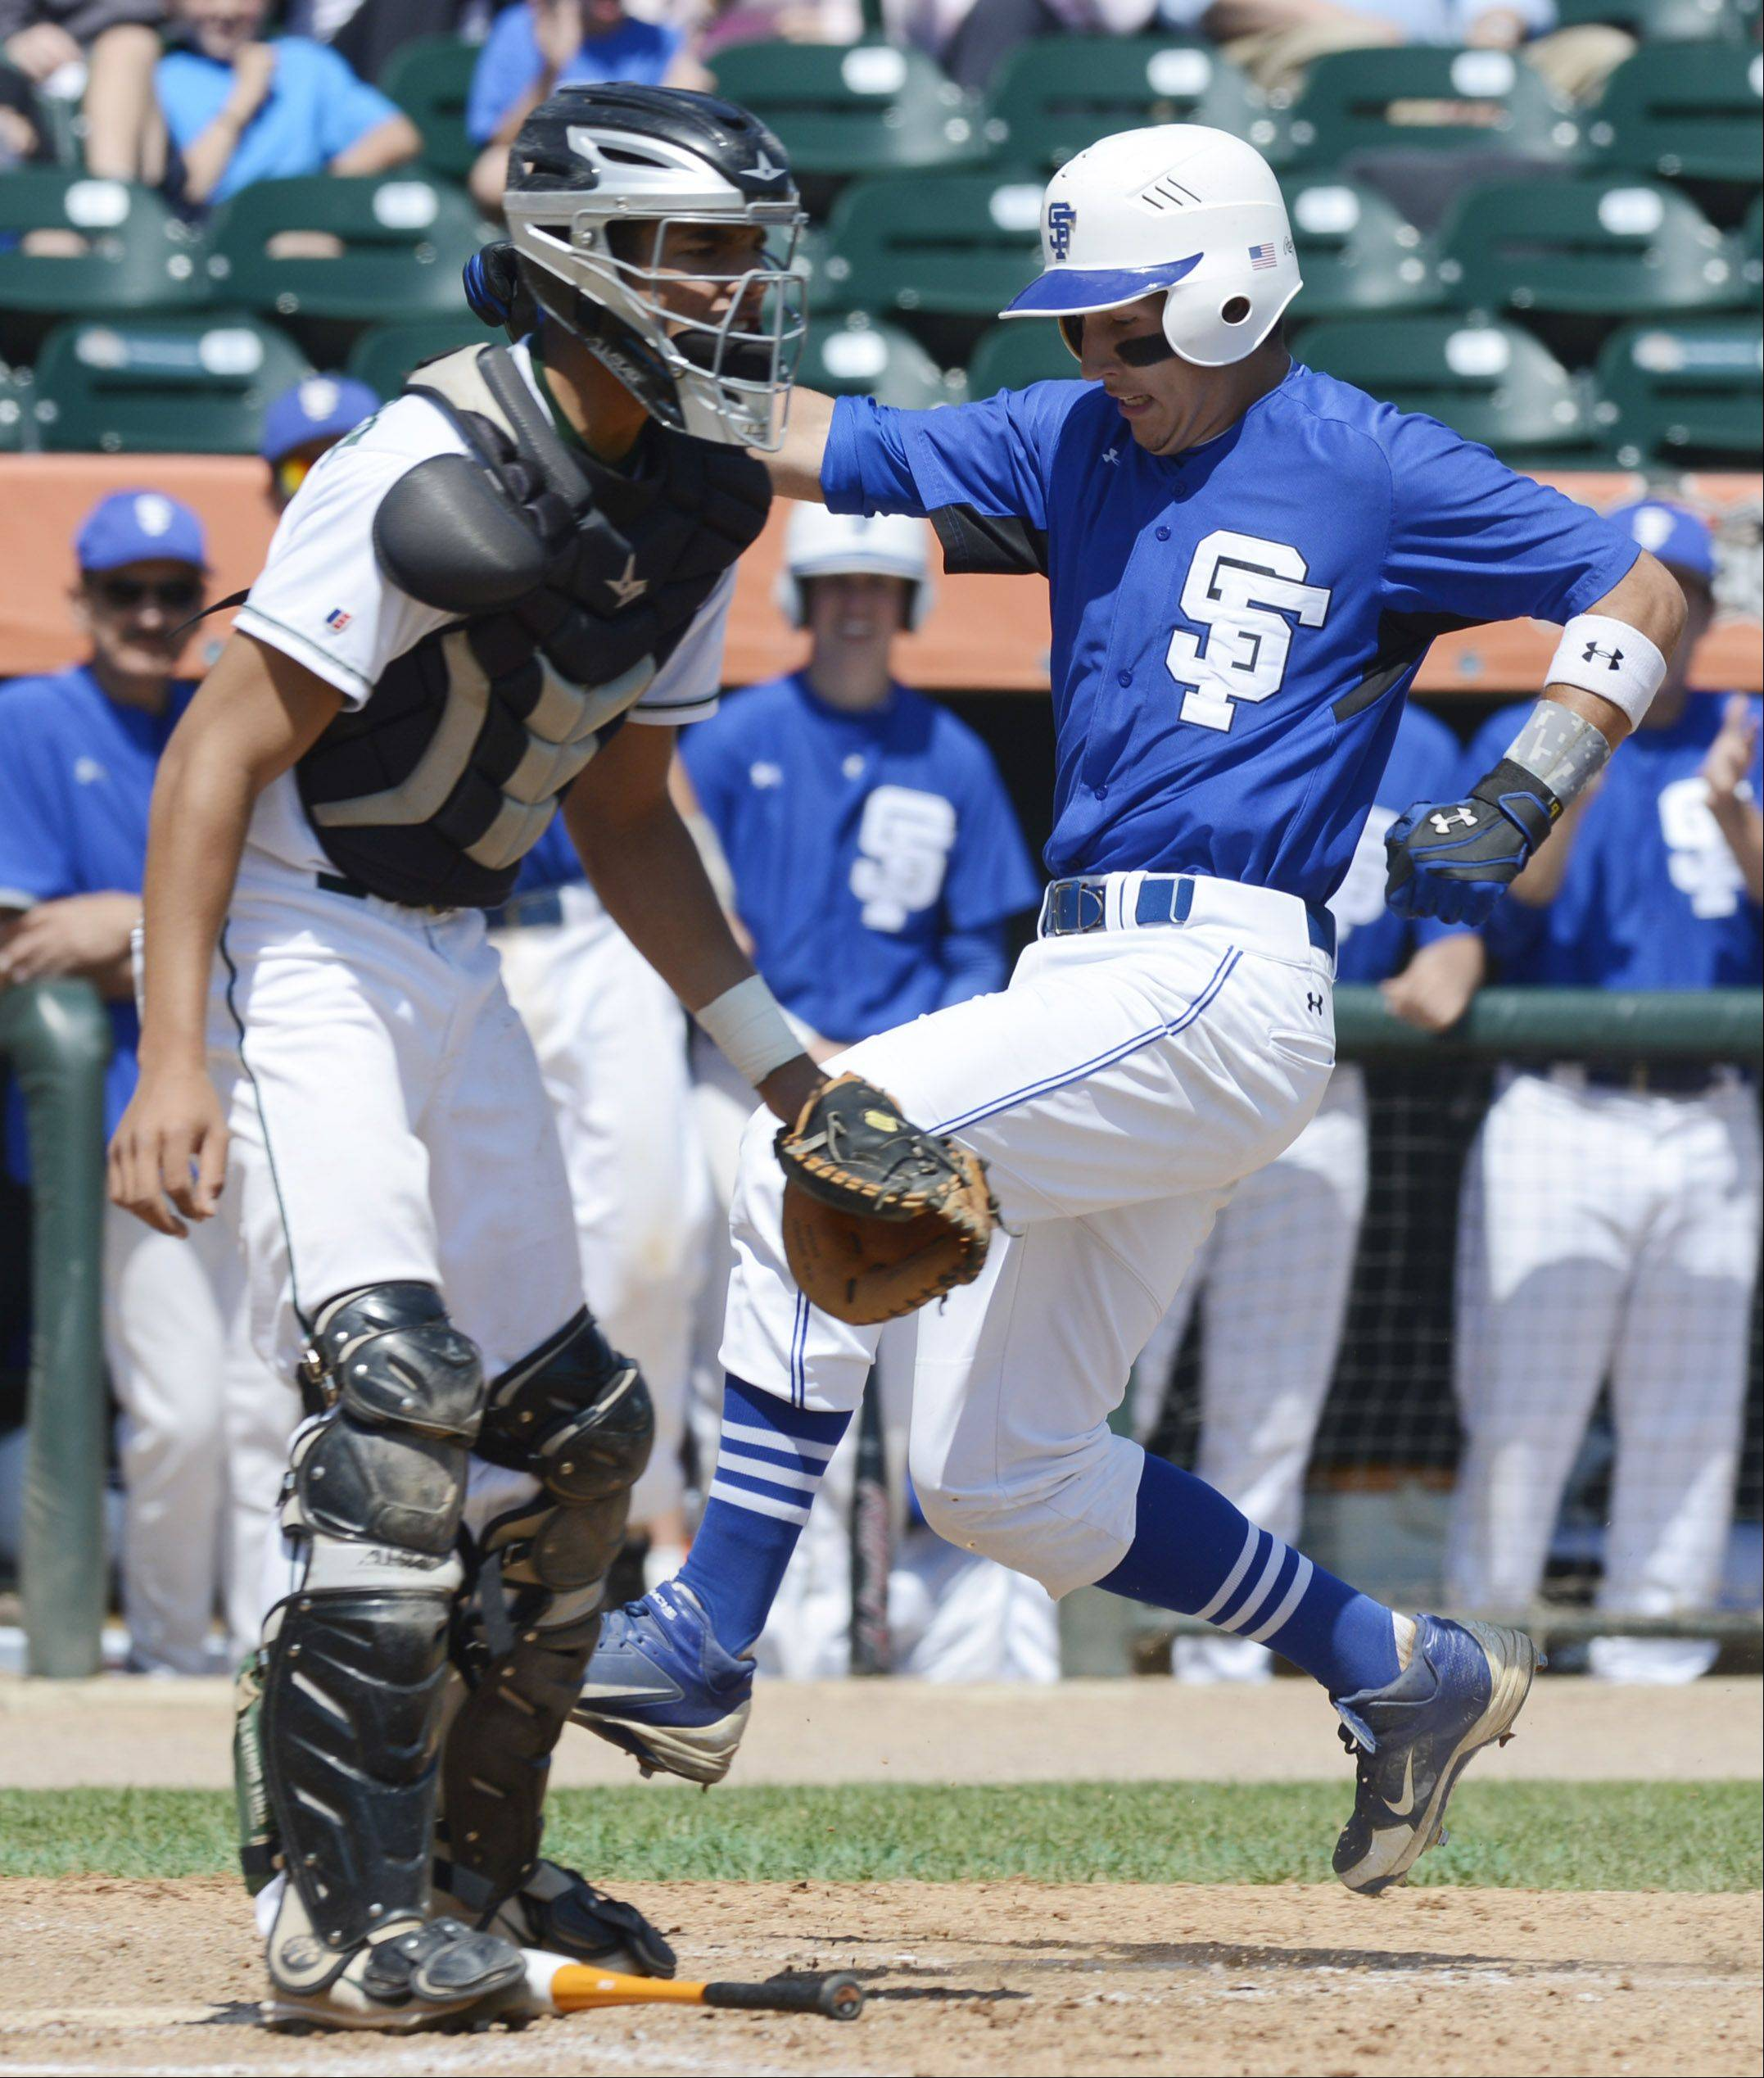 Joe Croci of St. Francis runs past Grayslake Central catcher Freddie Landers as he scores during the Class 3A state baseball semifinal at Silver Cross Field in Joliet on Friday.